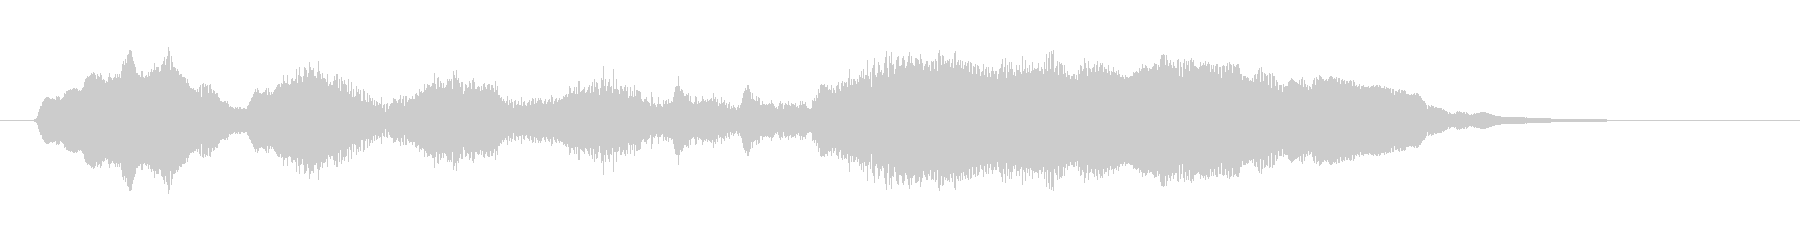 Movie_Opening company logo Refreshing and calm's unreproduced waveform